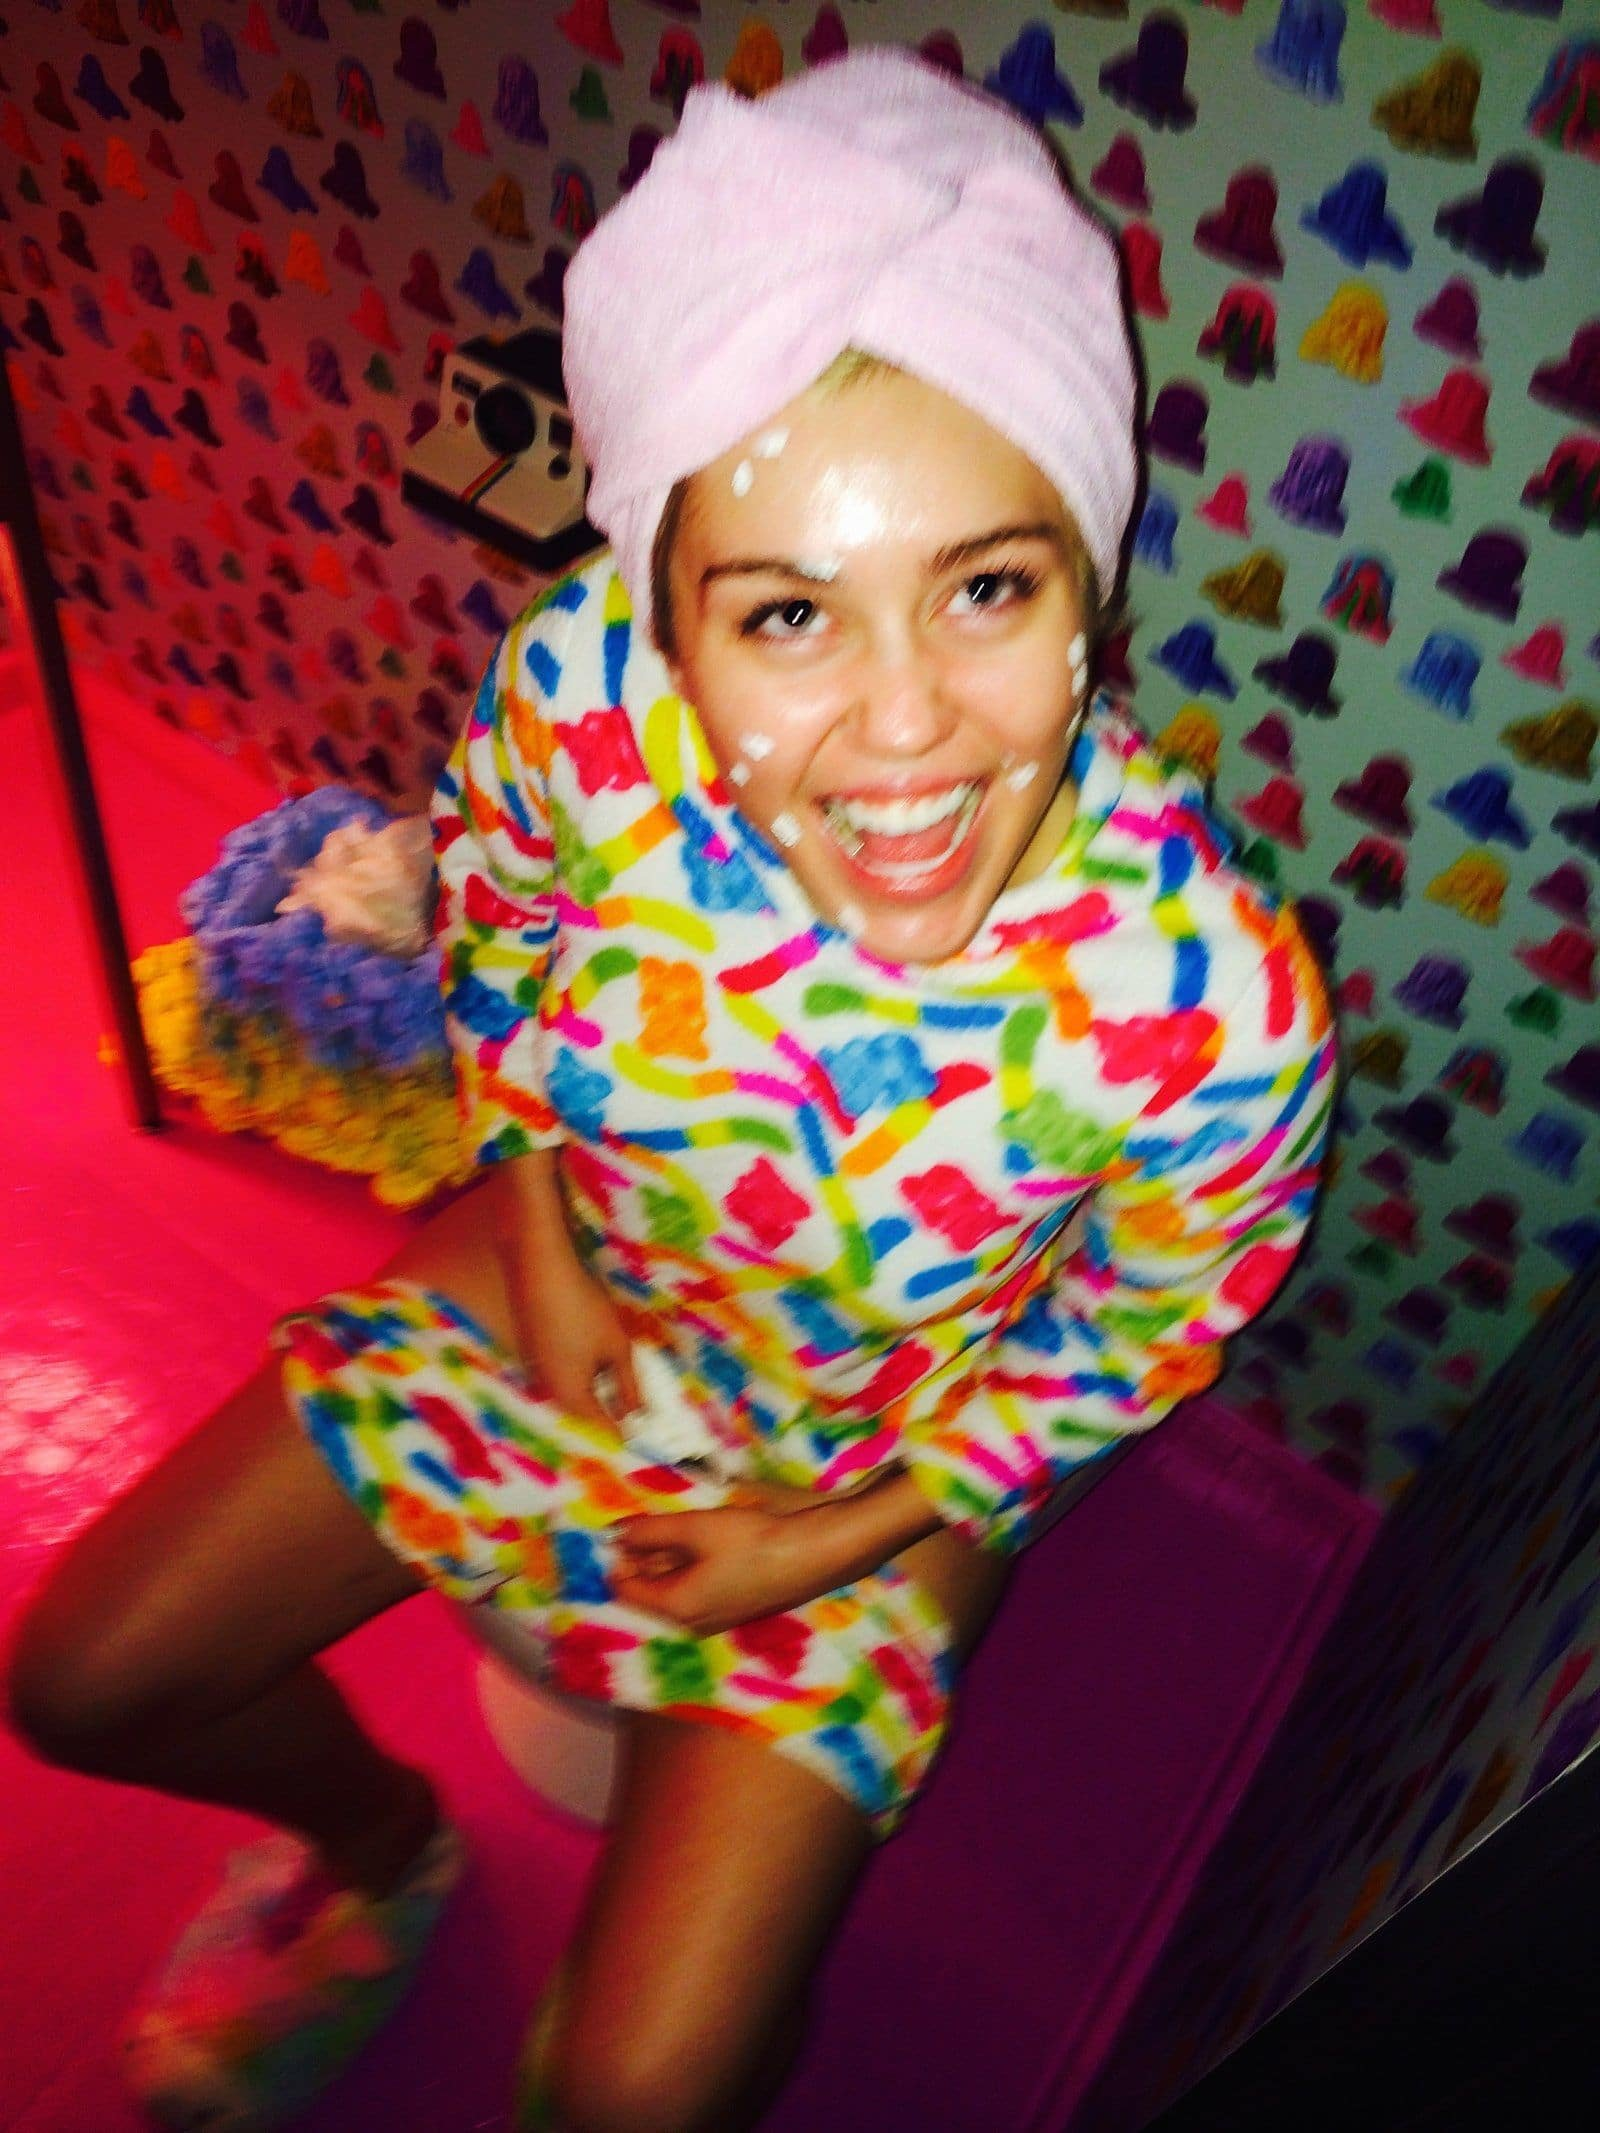 Miley Cyrus peeing wearing a head wrap